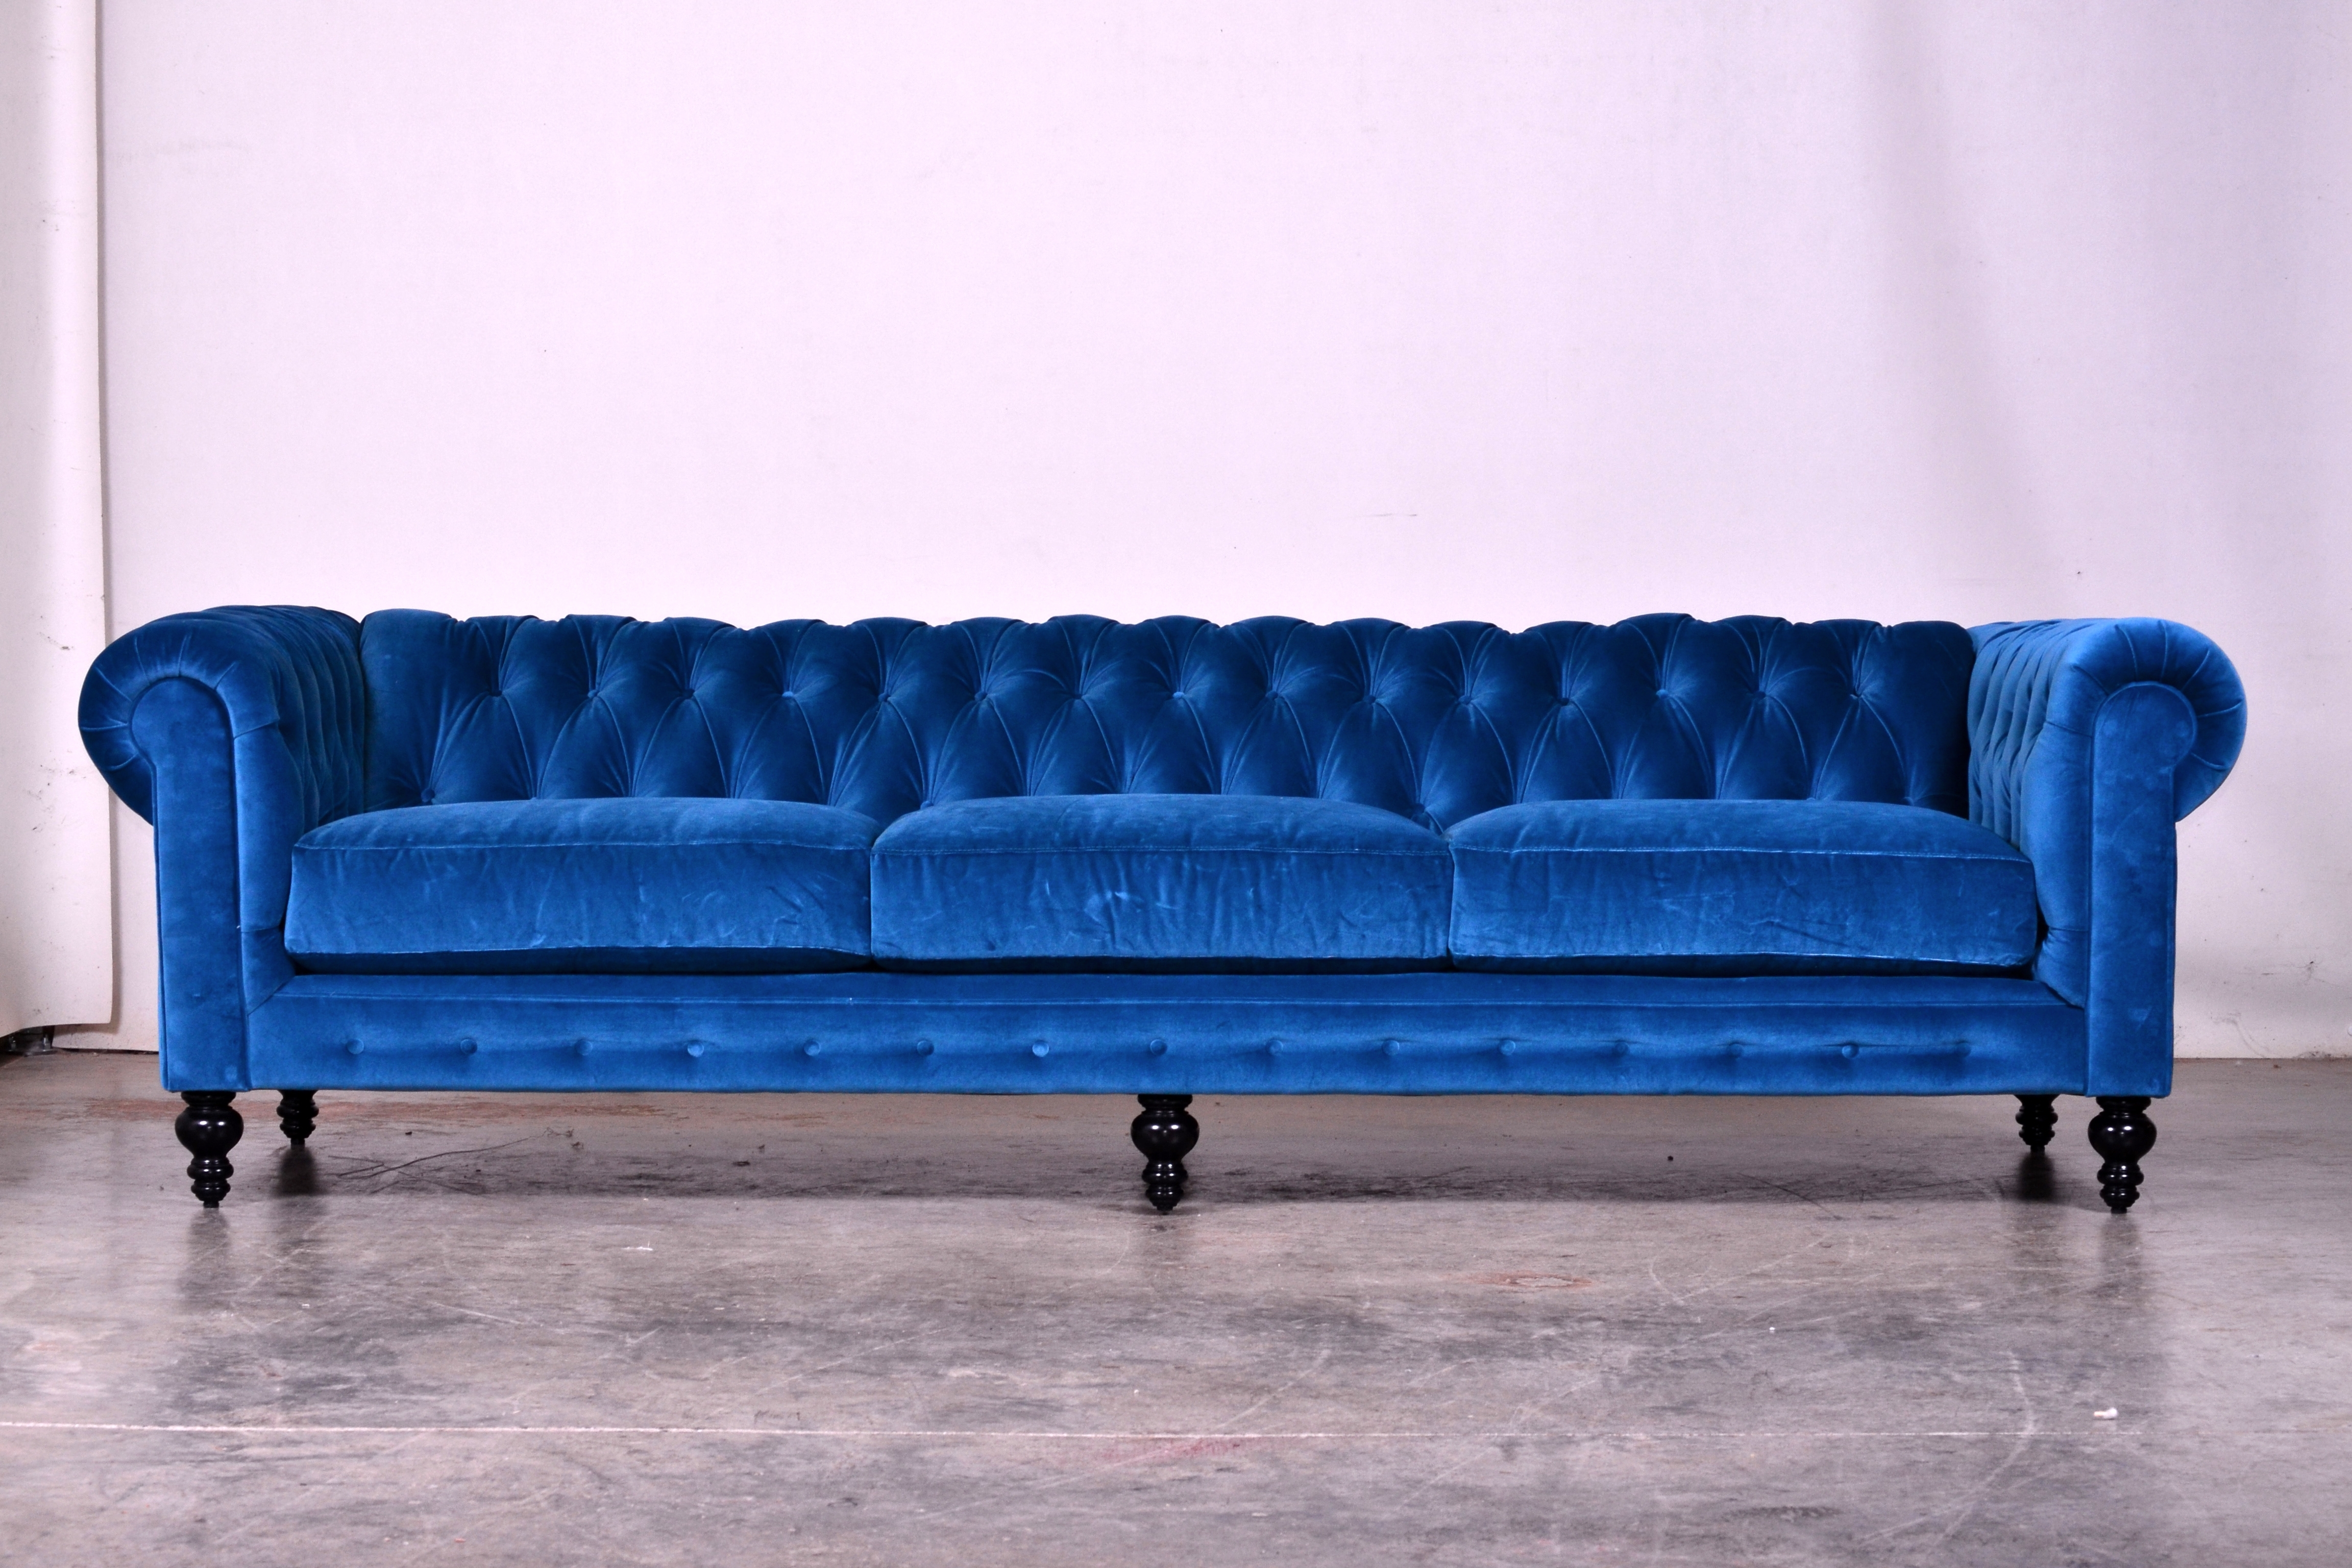 Long Modern Sofas With Regard To 2018 The Comfortable Couch Company (Cococo) Como Cyan Chesterfield (View 7 of 15)